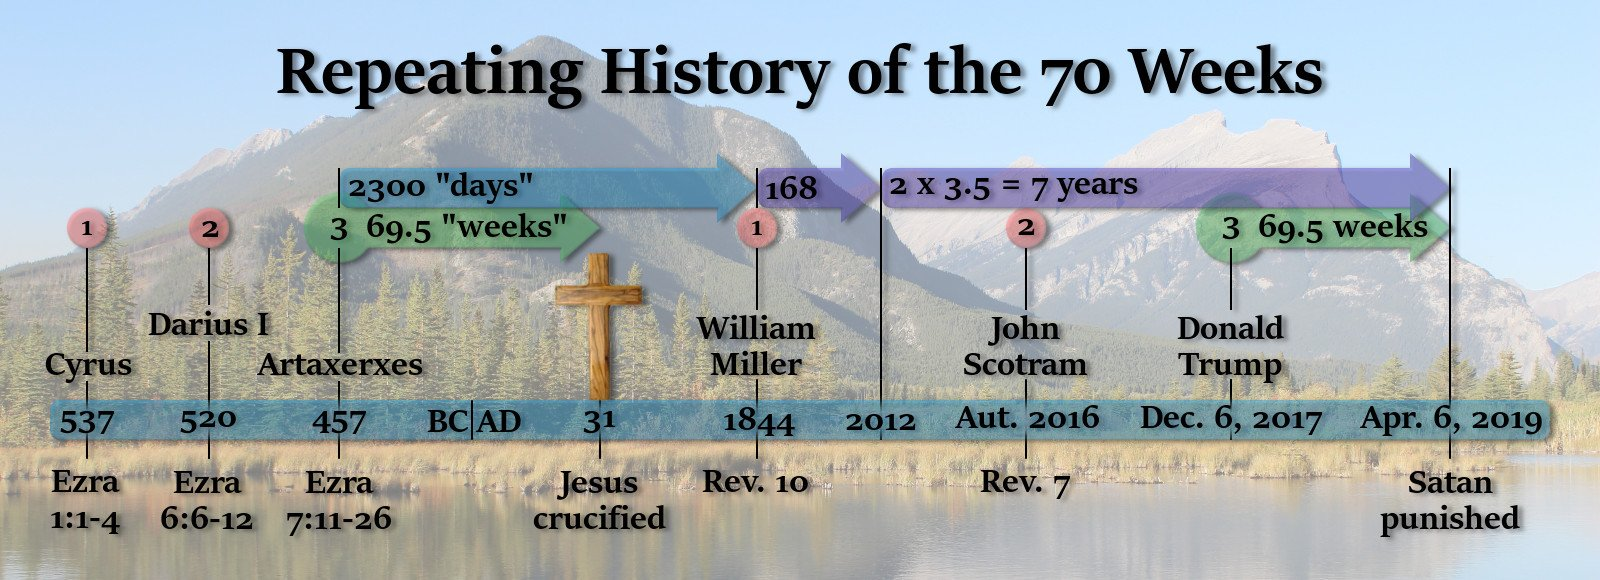 The Repeated History of the 70 Weeks